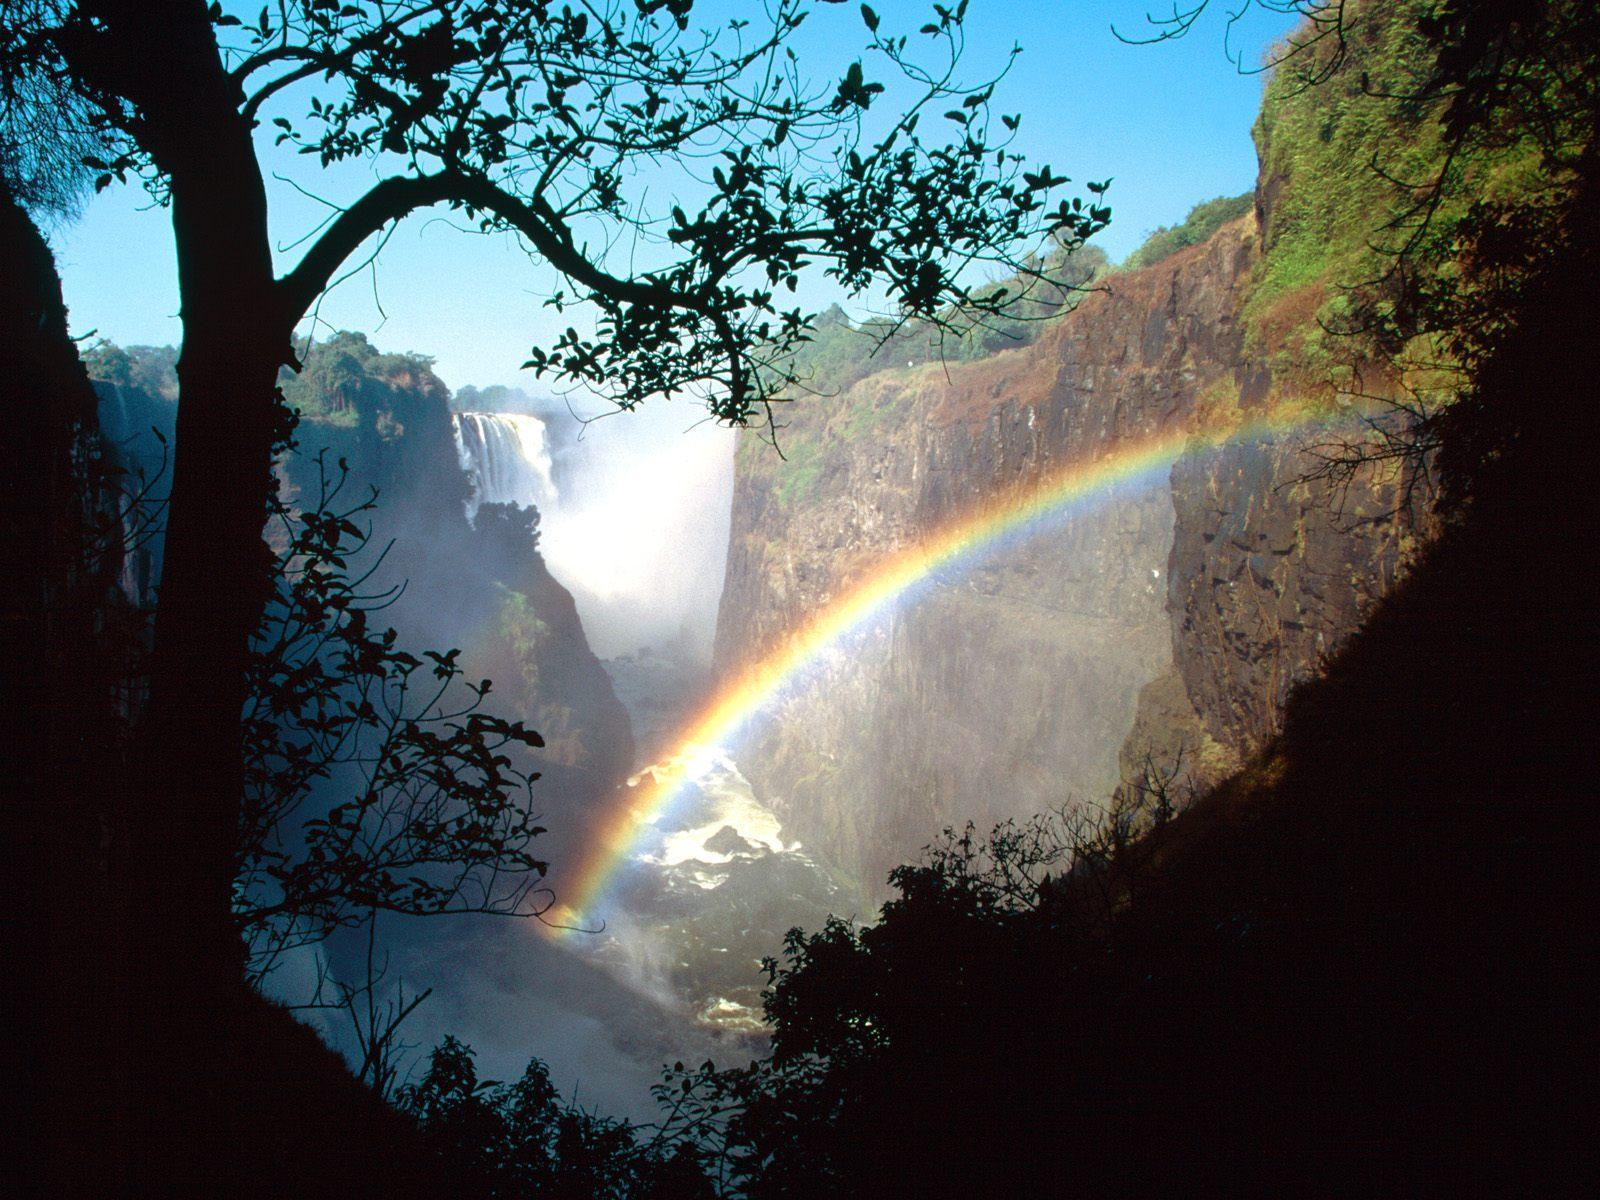 Victoria falls Zimbabwe free desktop backgrounds